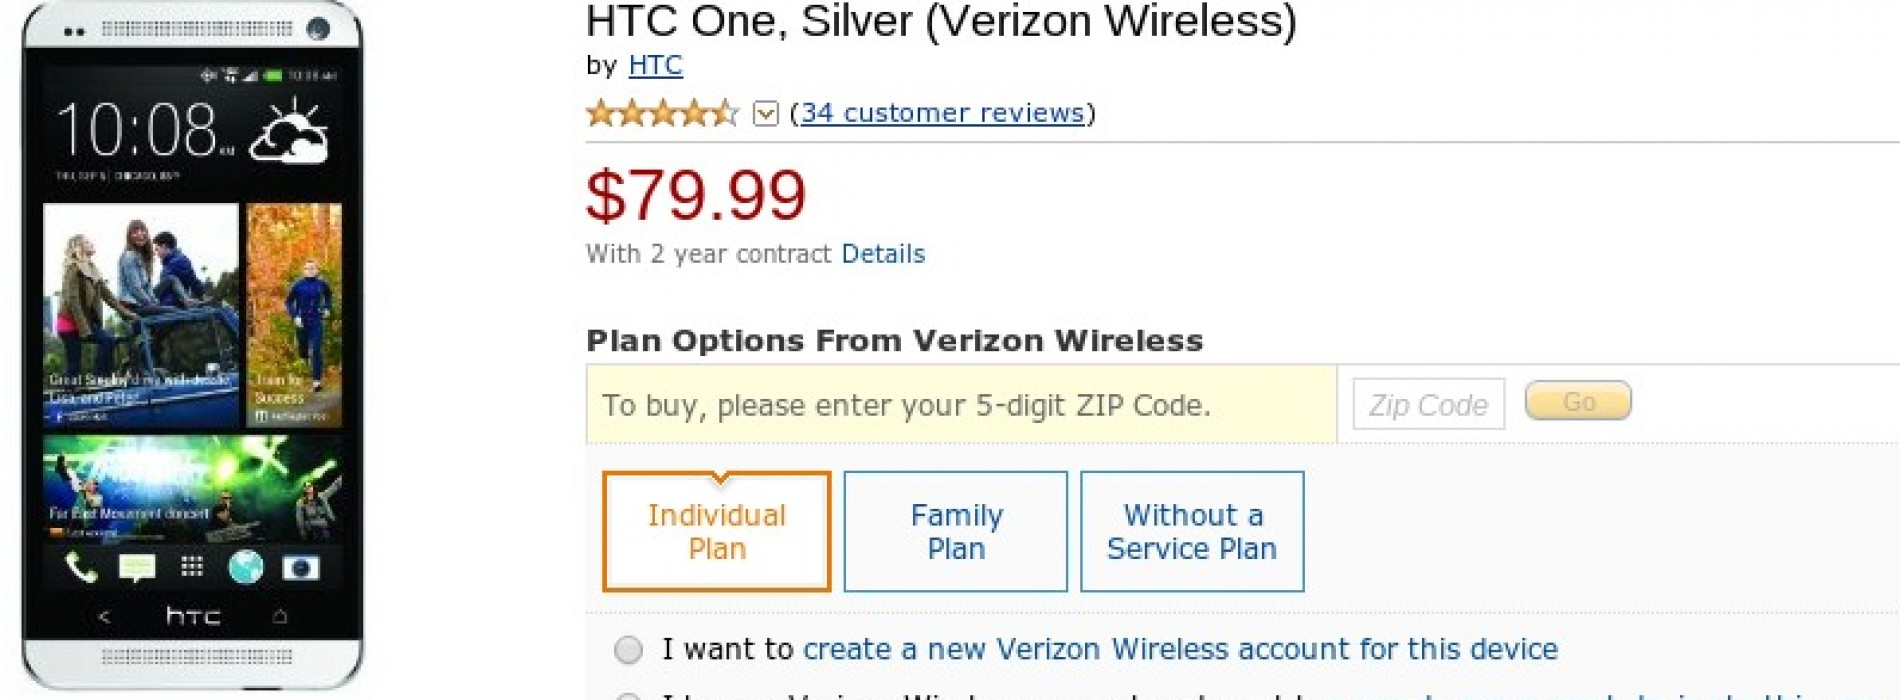 Amazon offering Verizon HTC One for $79.99 to new, existing subscribers